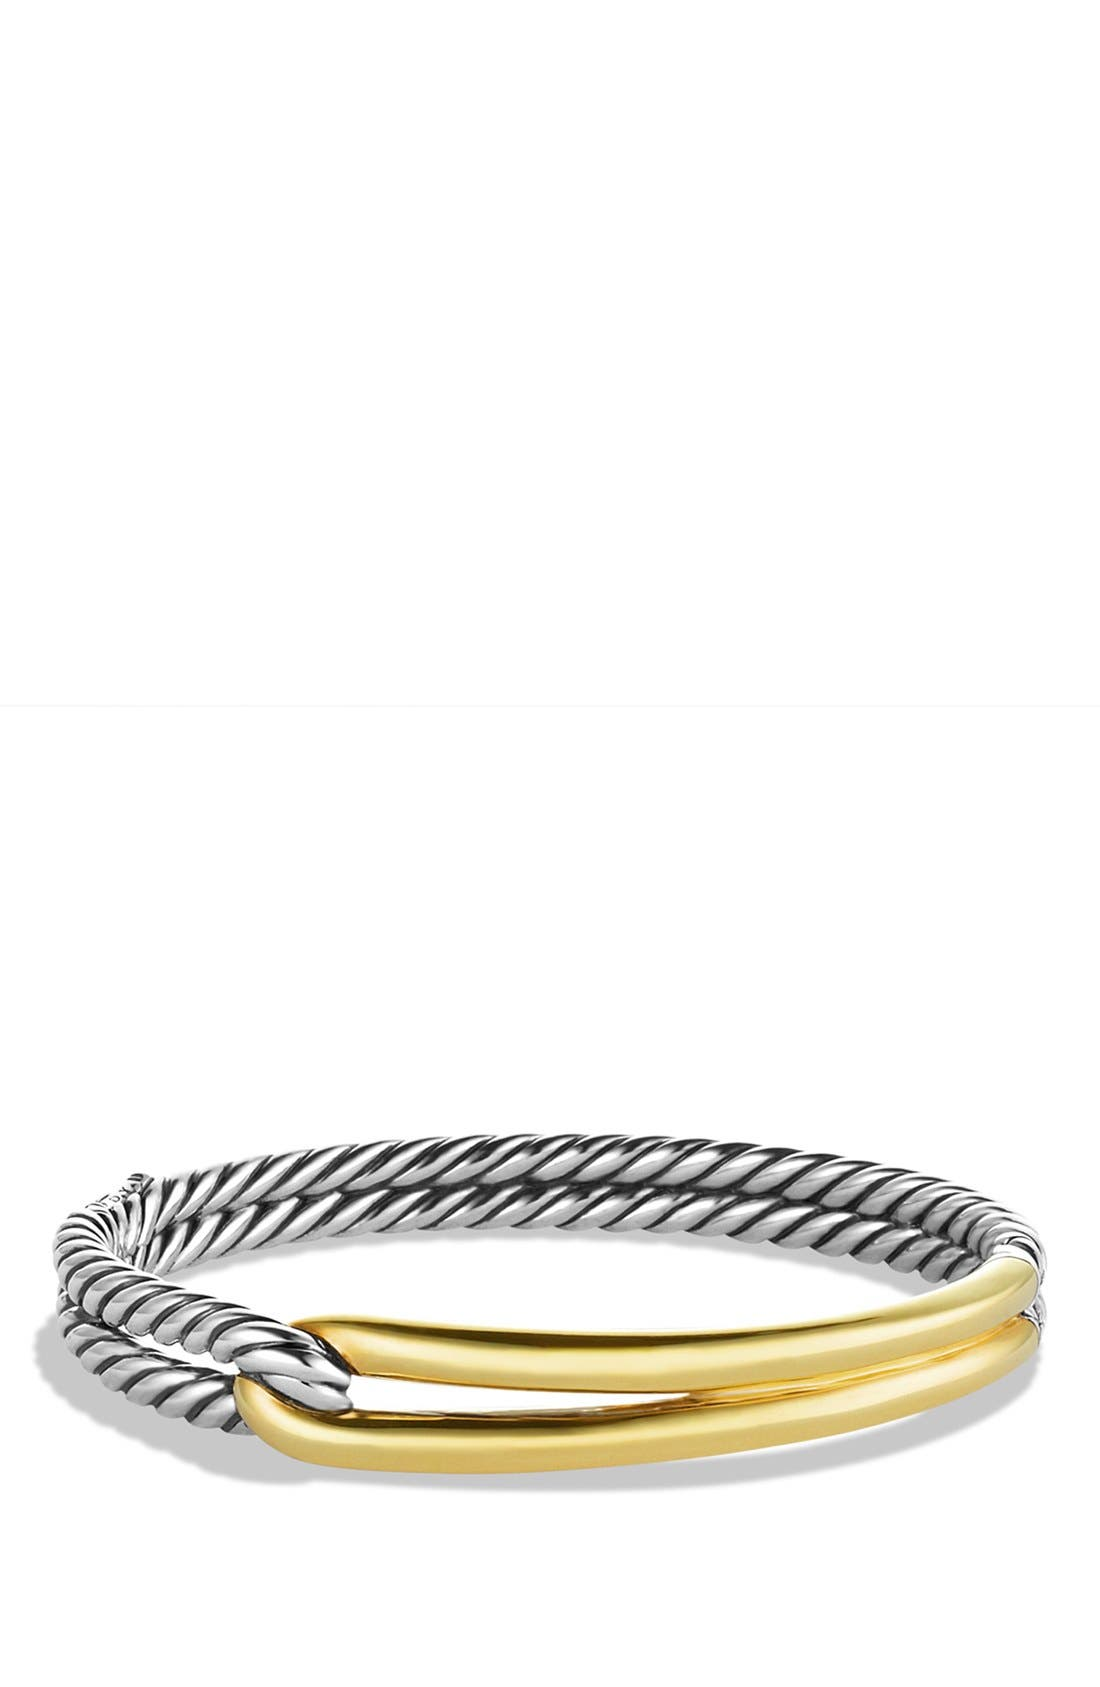 'Labyrinth' Single-Loop Bracelet with Gold,                         Main,                         color, Two Tone